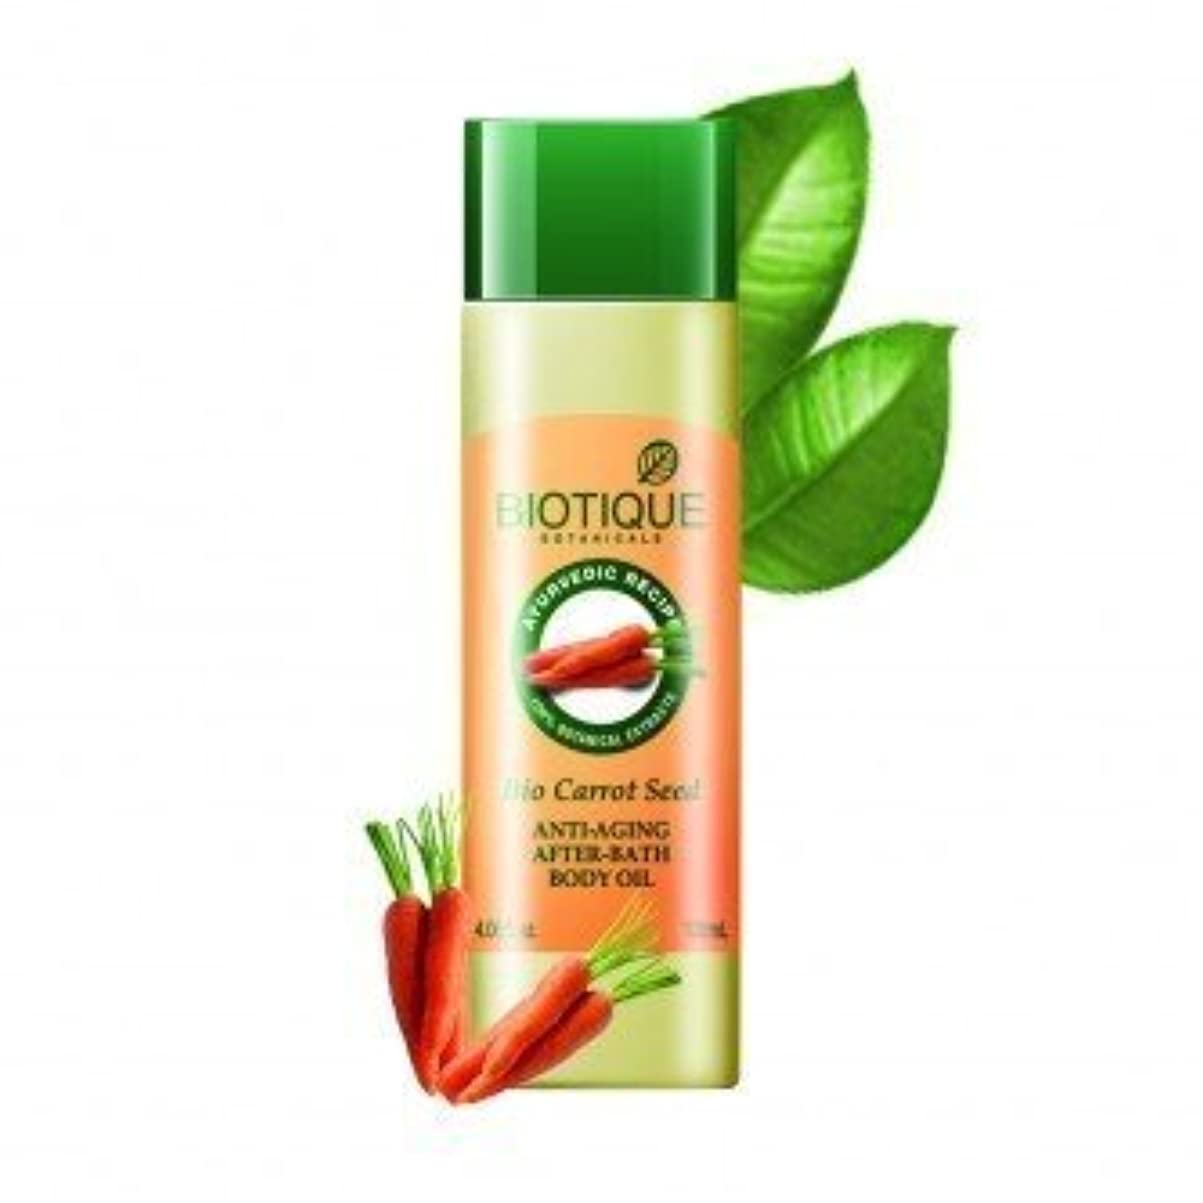 パトロンスペア進捗Biotique Bio Carrot Seed Anti-Aging After-Bath Body Oil 120 Ml (Ship From India)